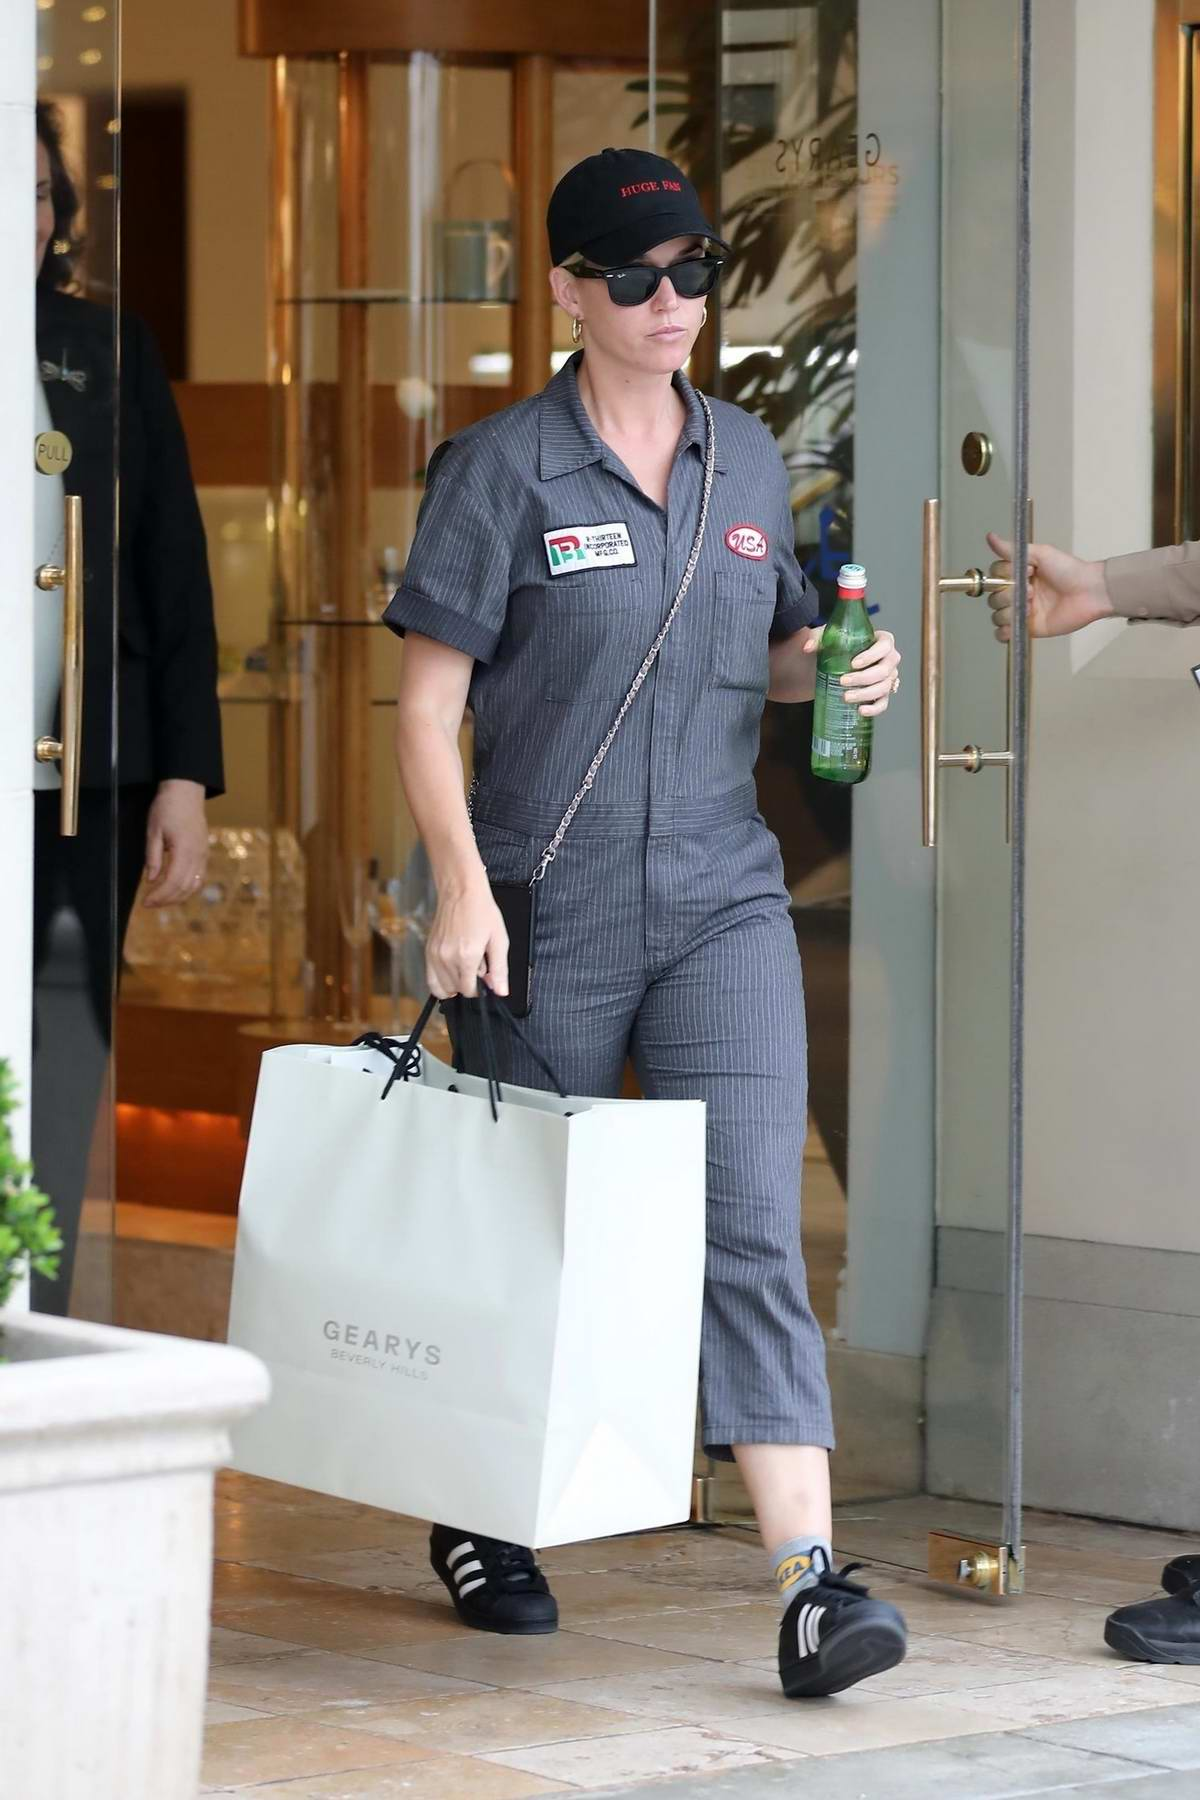 Katy Perry wears a grey jumpsuit while out shopping at Gearys in Bevely Hills, Los Angeles